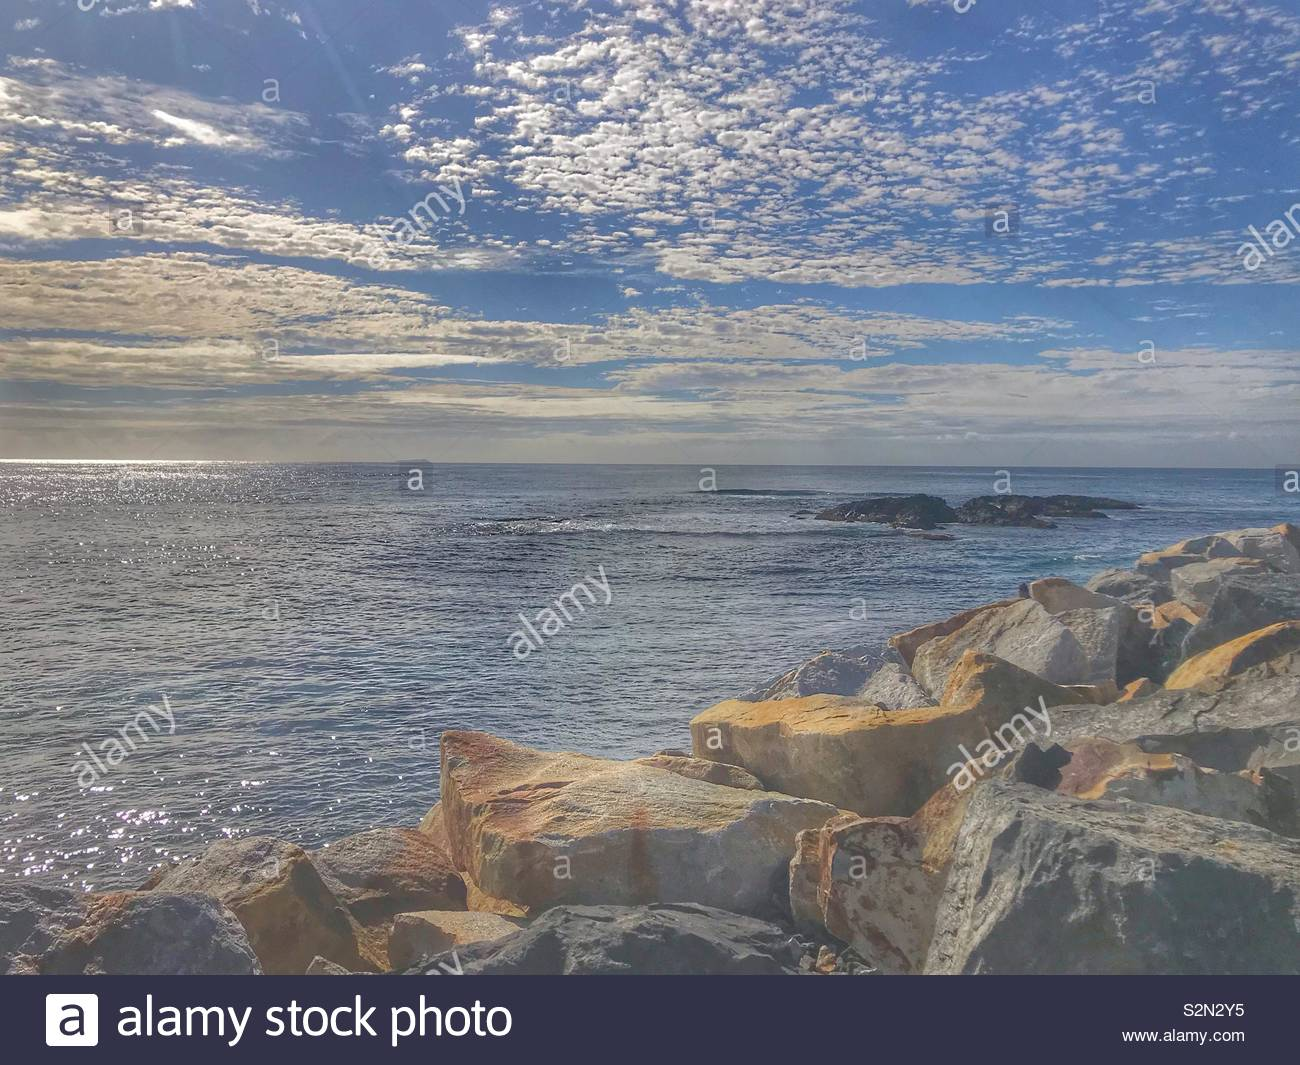 Dappled clouds on blue sky above Pacific Ocean from East coast of Australia - Stock Image